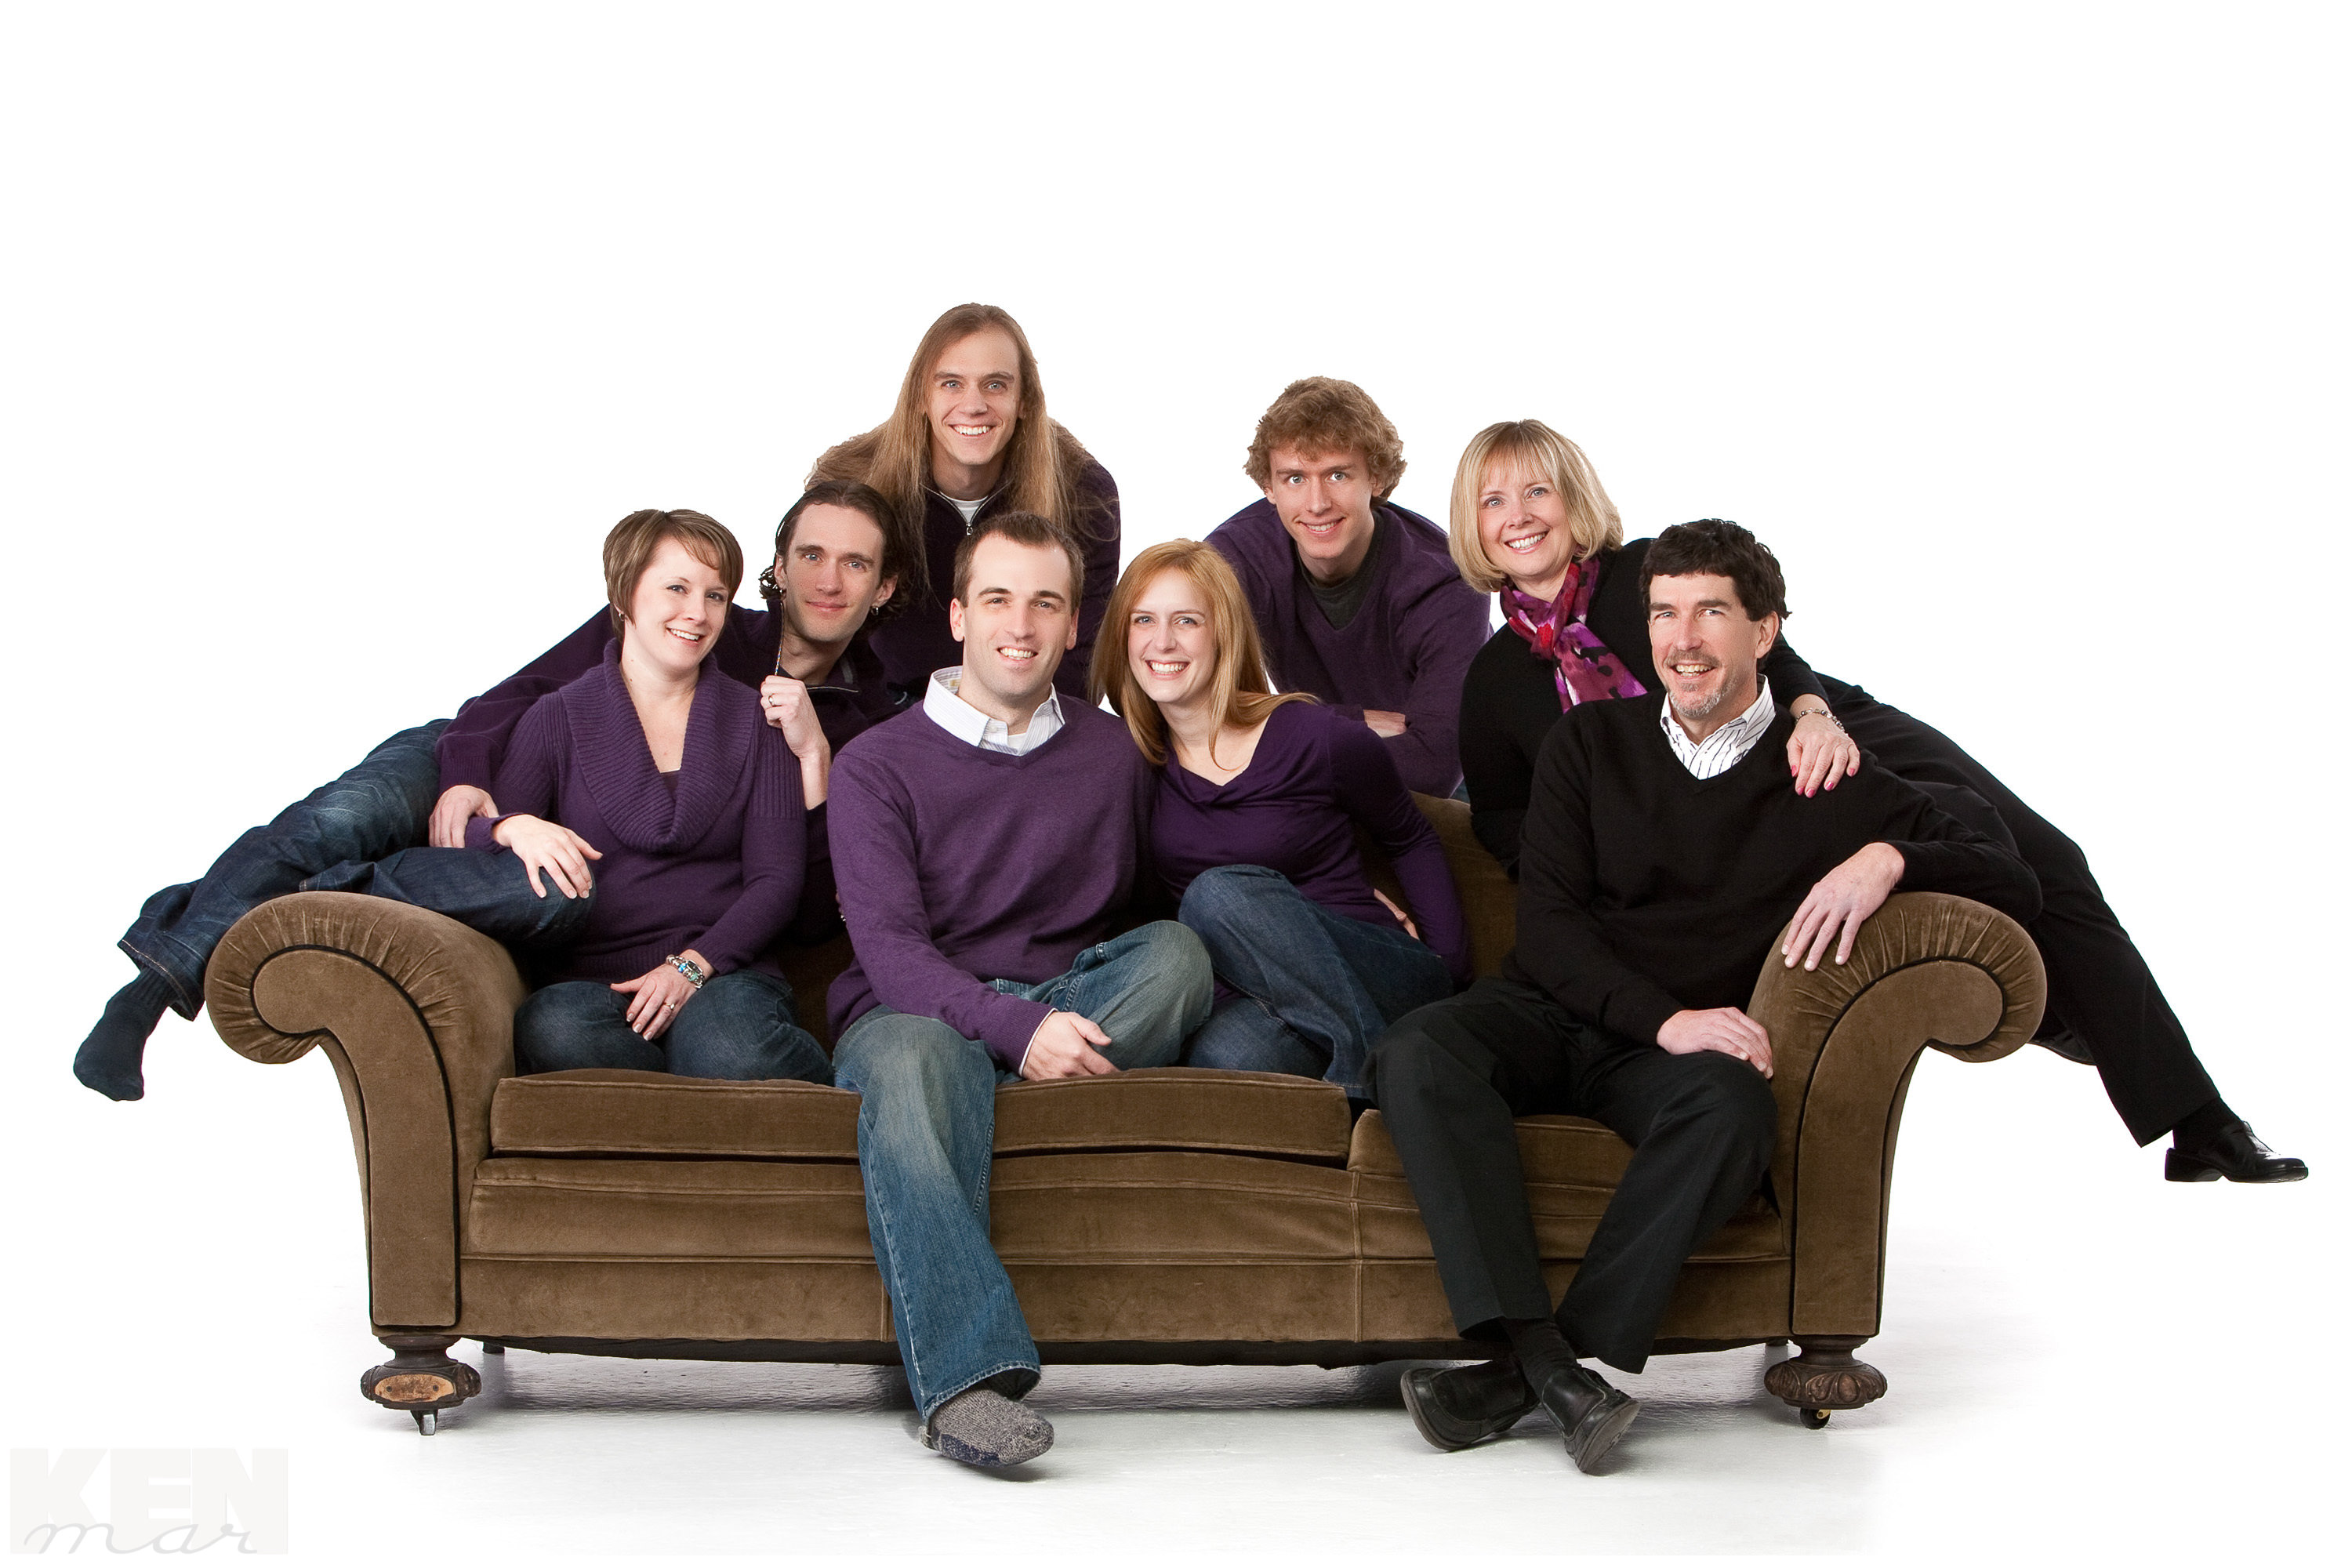 Fun, casual unposed pose of a family of 8